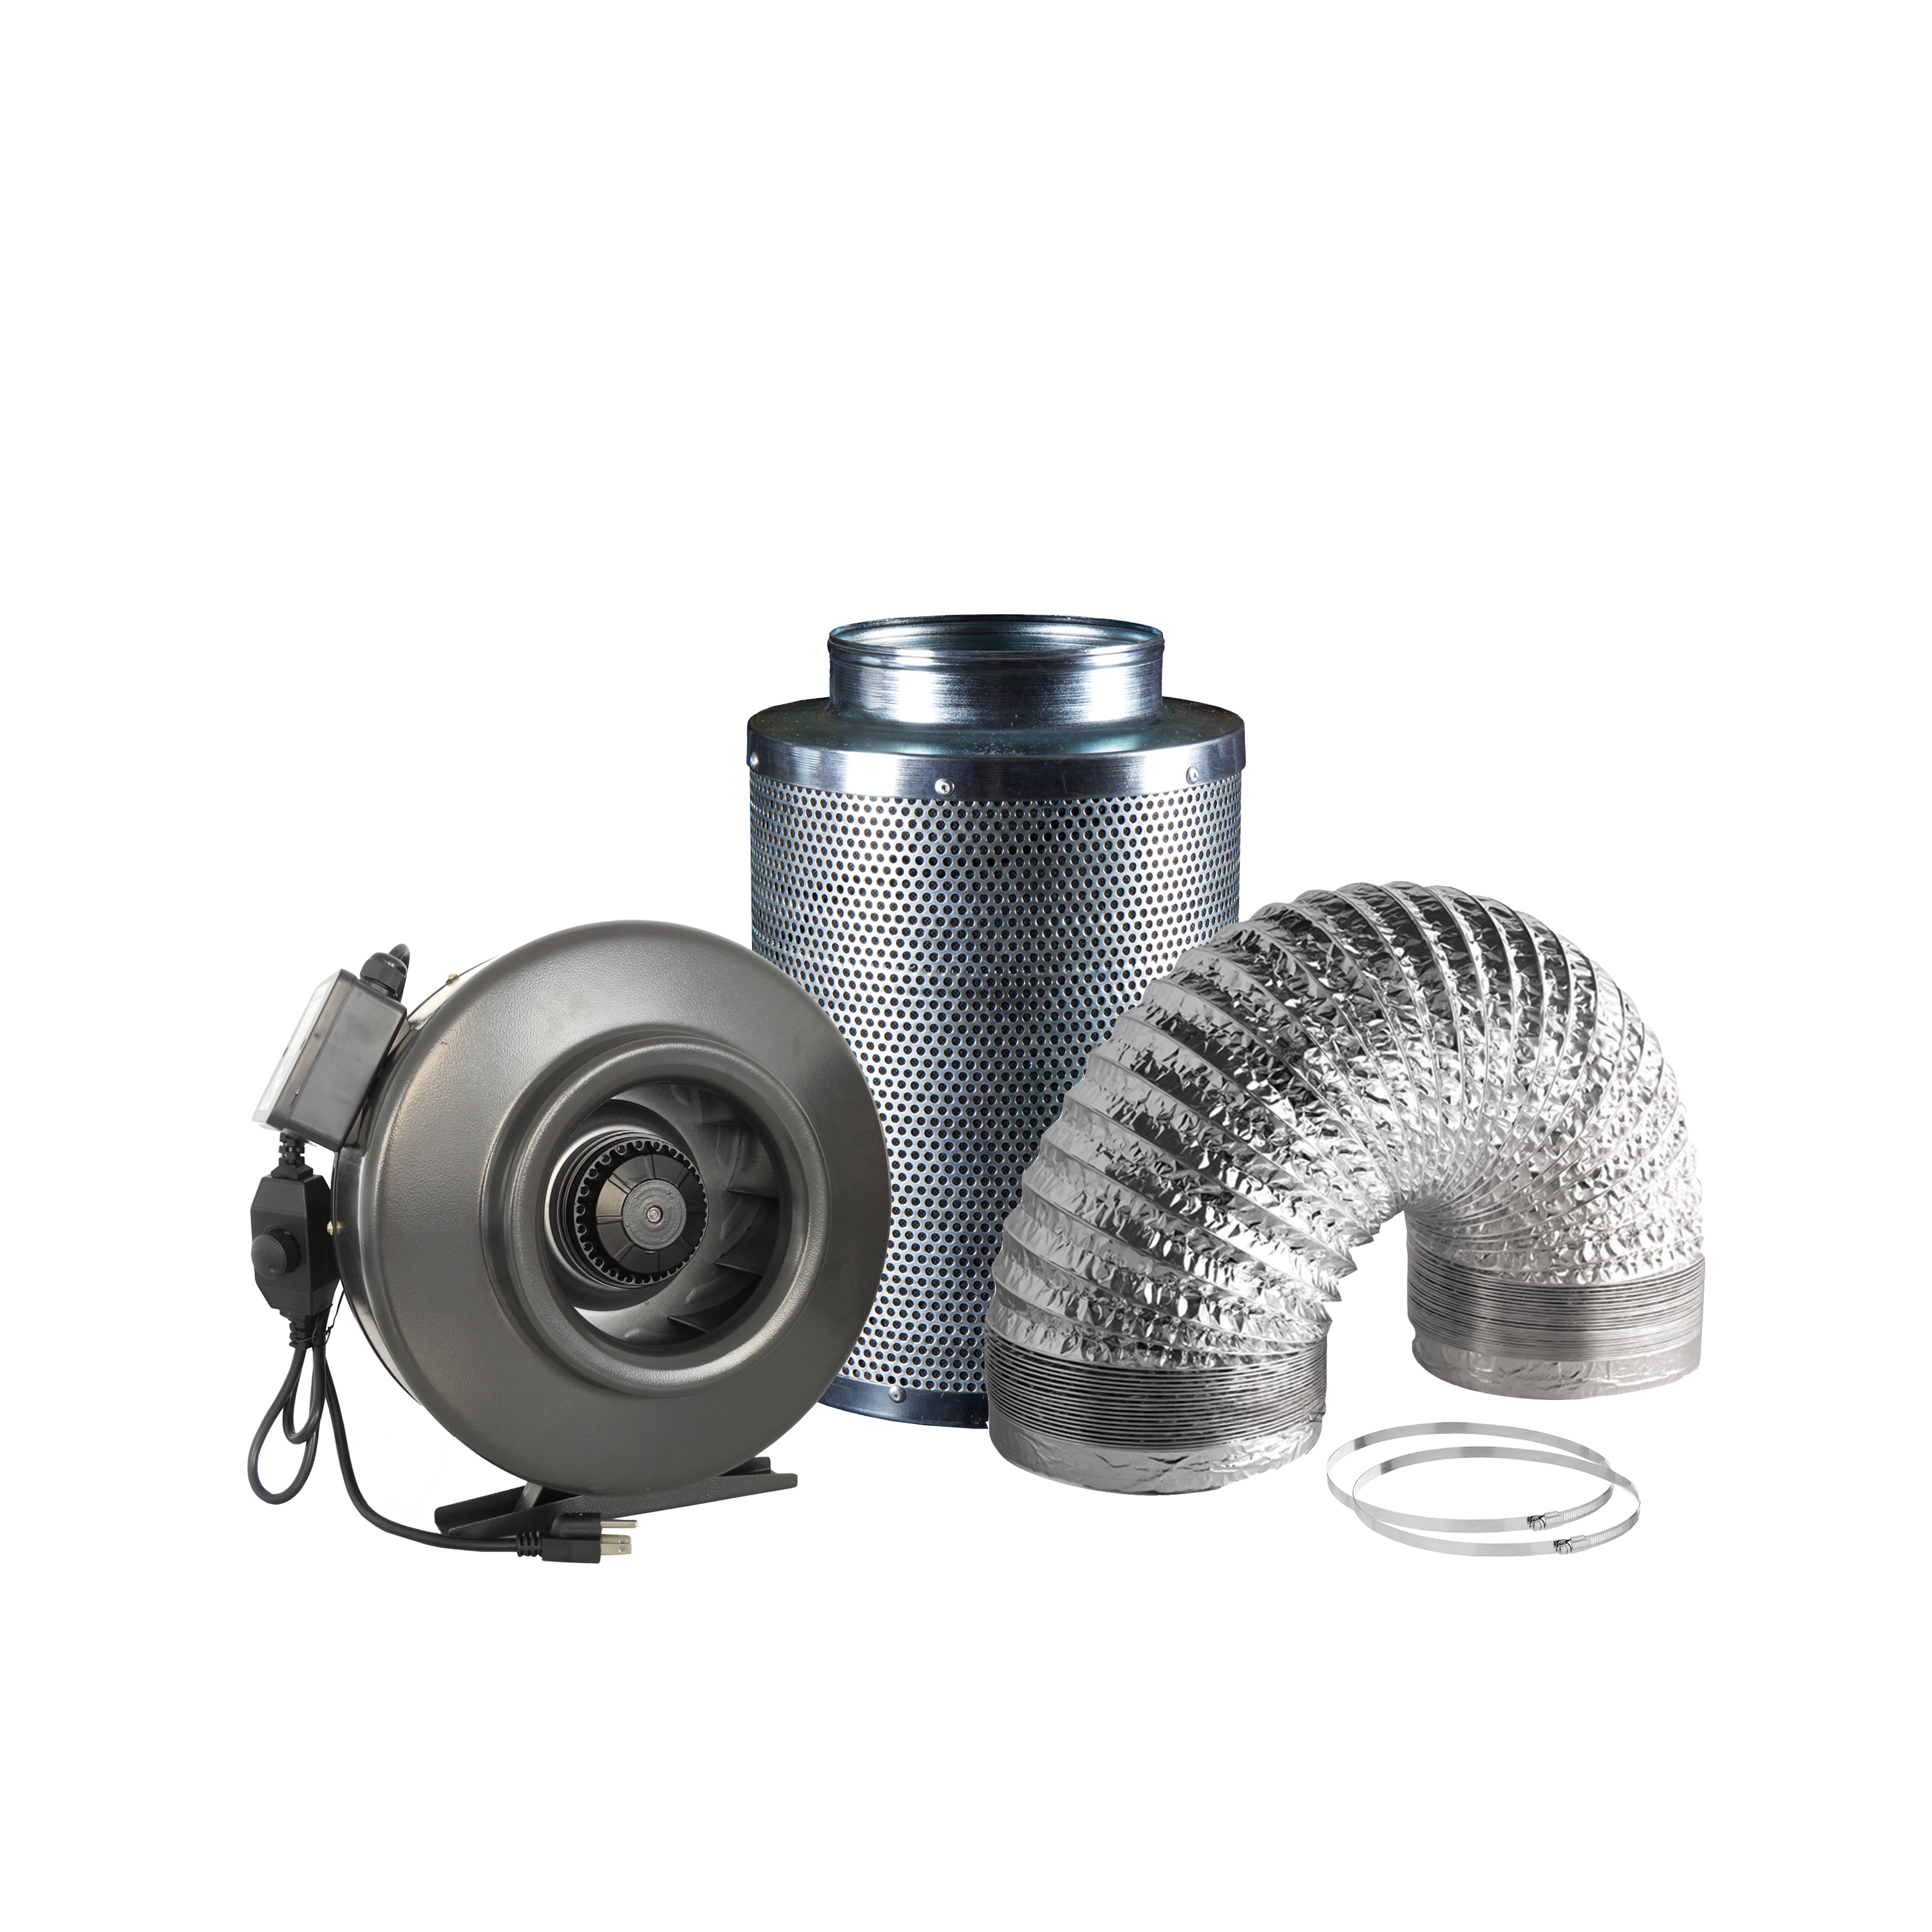 Hydro Crunch 188 CFM 4-inch Centrifugal Inline Duct Fan with Carbon Filter and Aluminum Ducting for Indoor Garden Ventilation